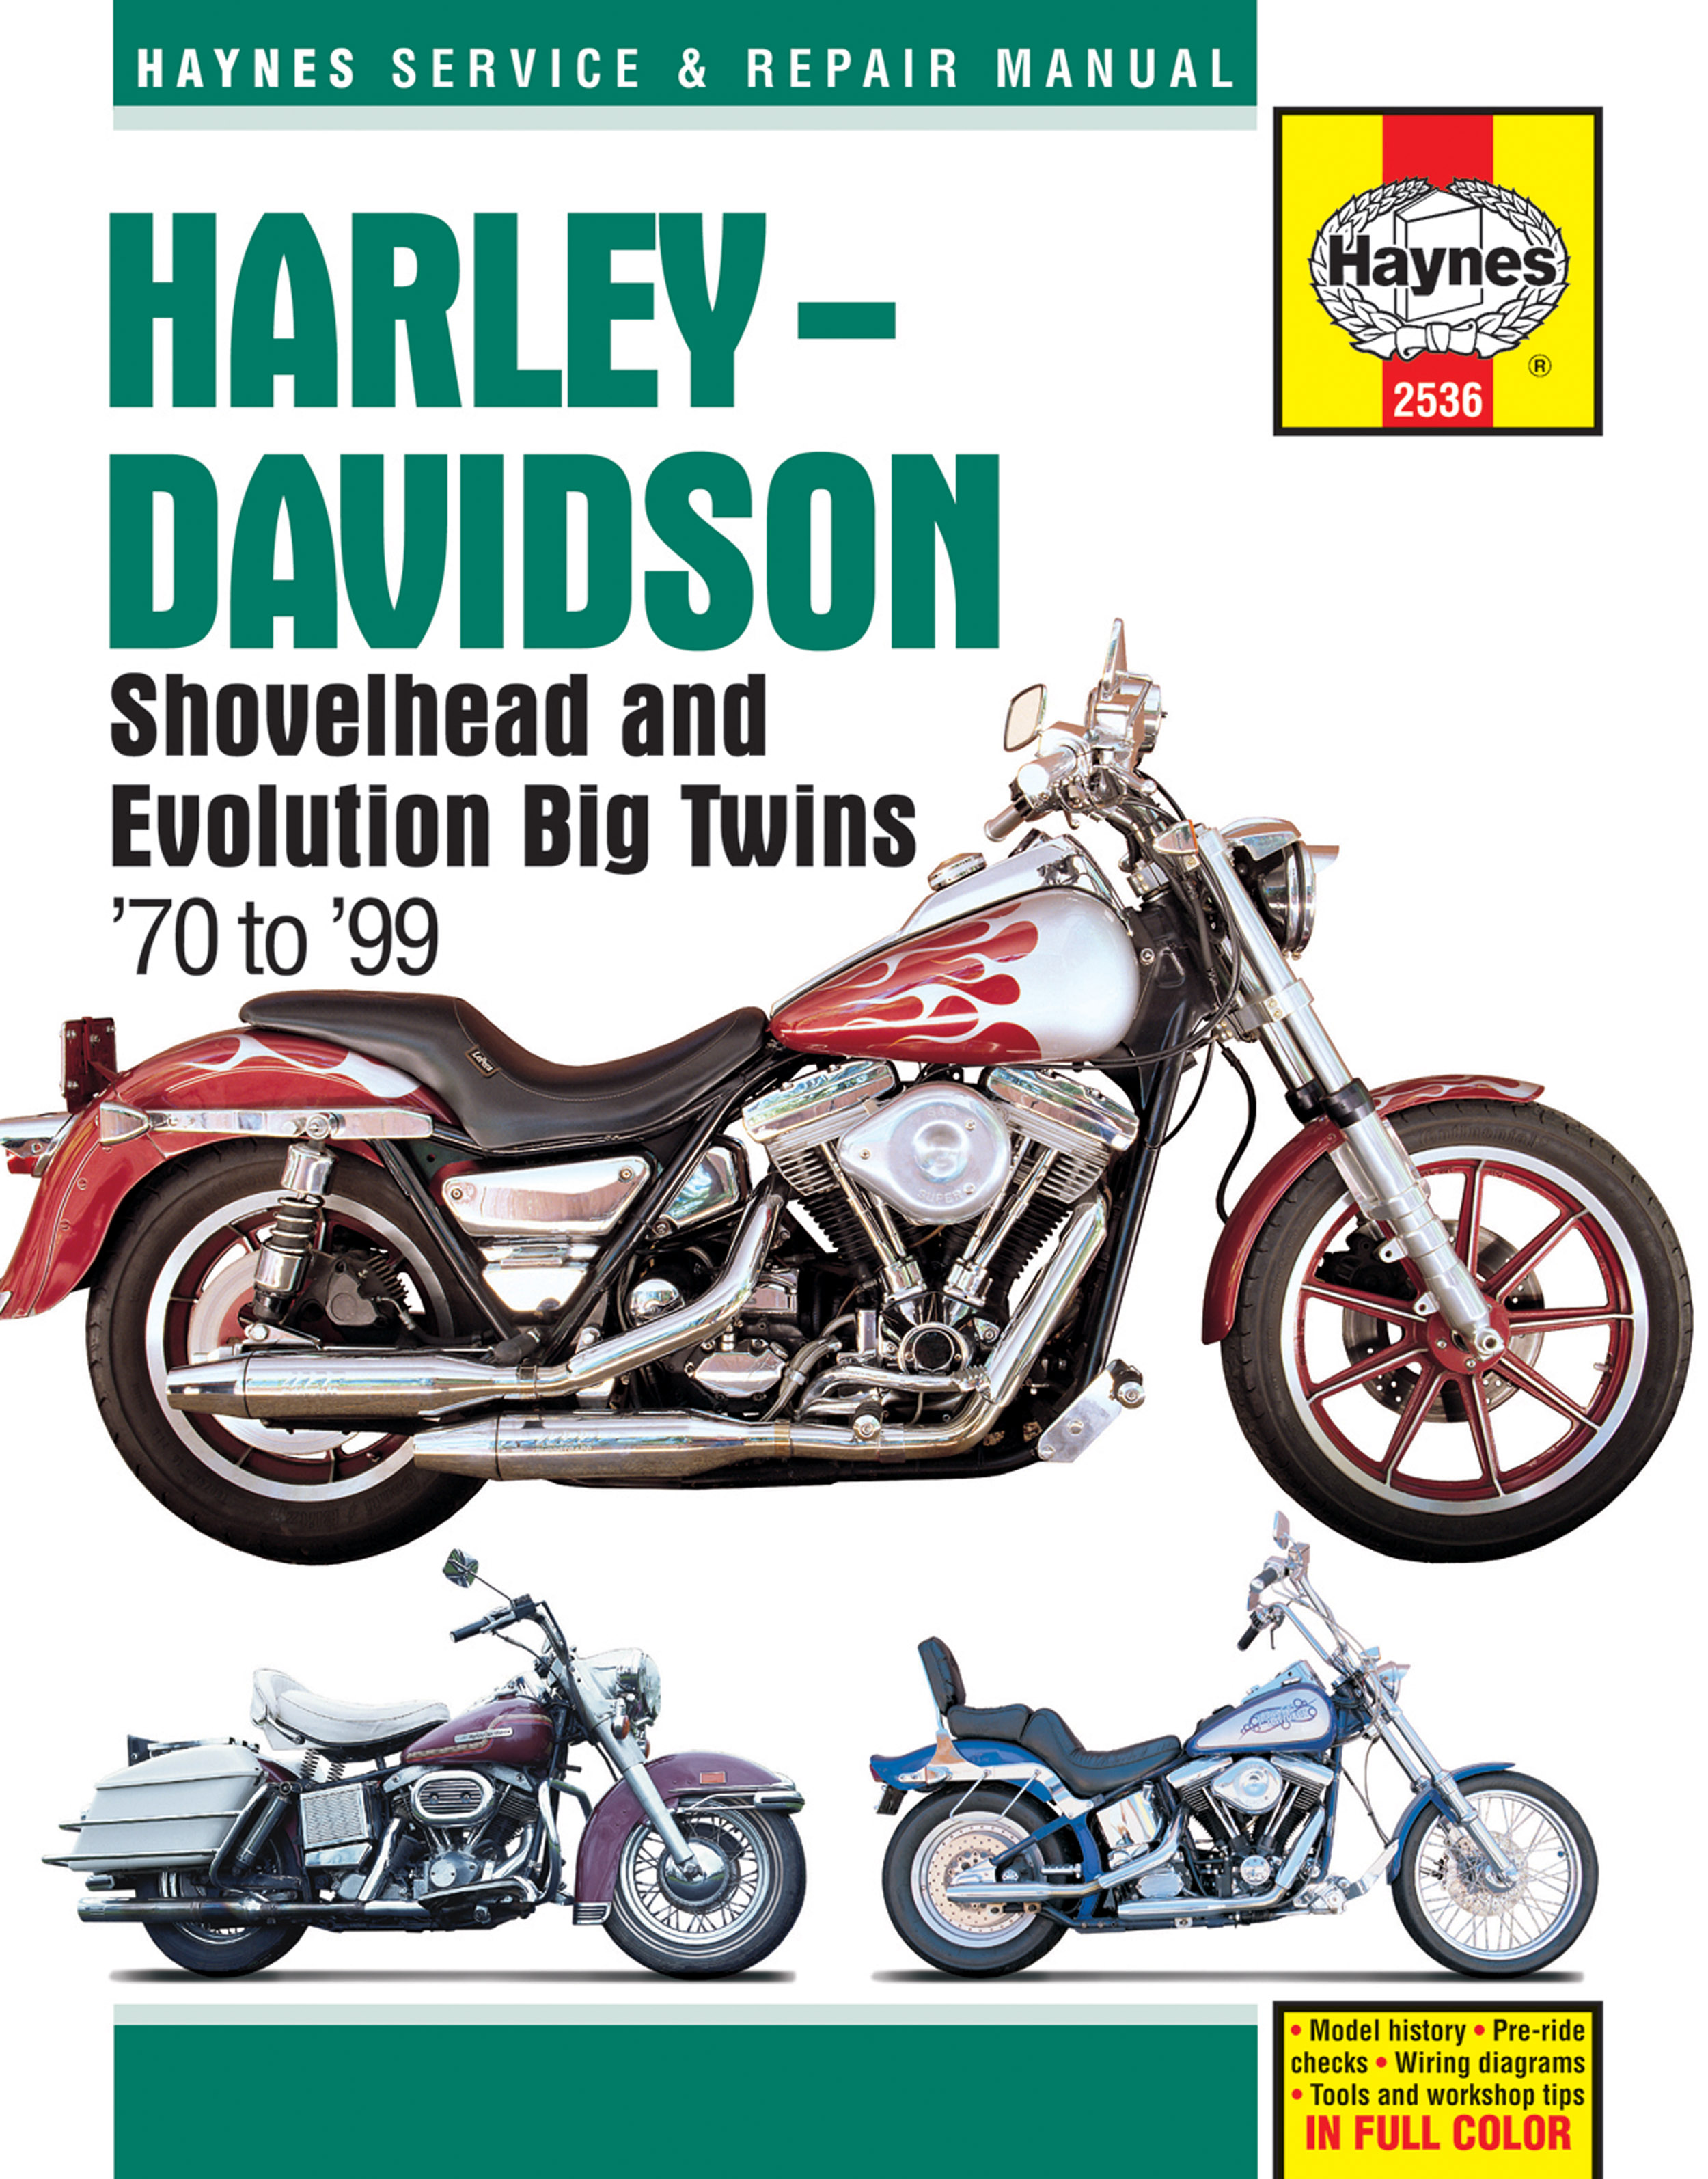 Evolution Big Twins Haynes Manuals 1964 Flh Wiring Diagram Enlarge Harley Davidson Shovelhead